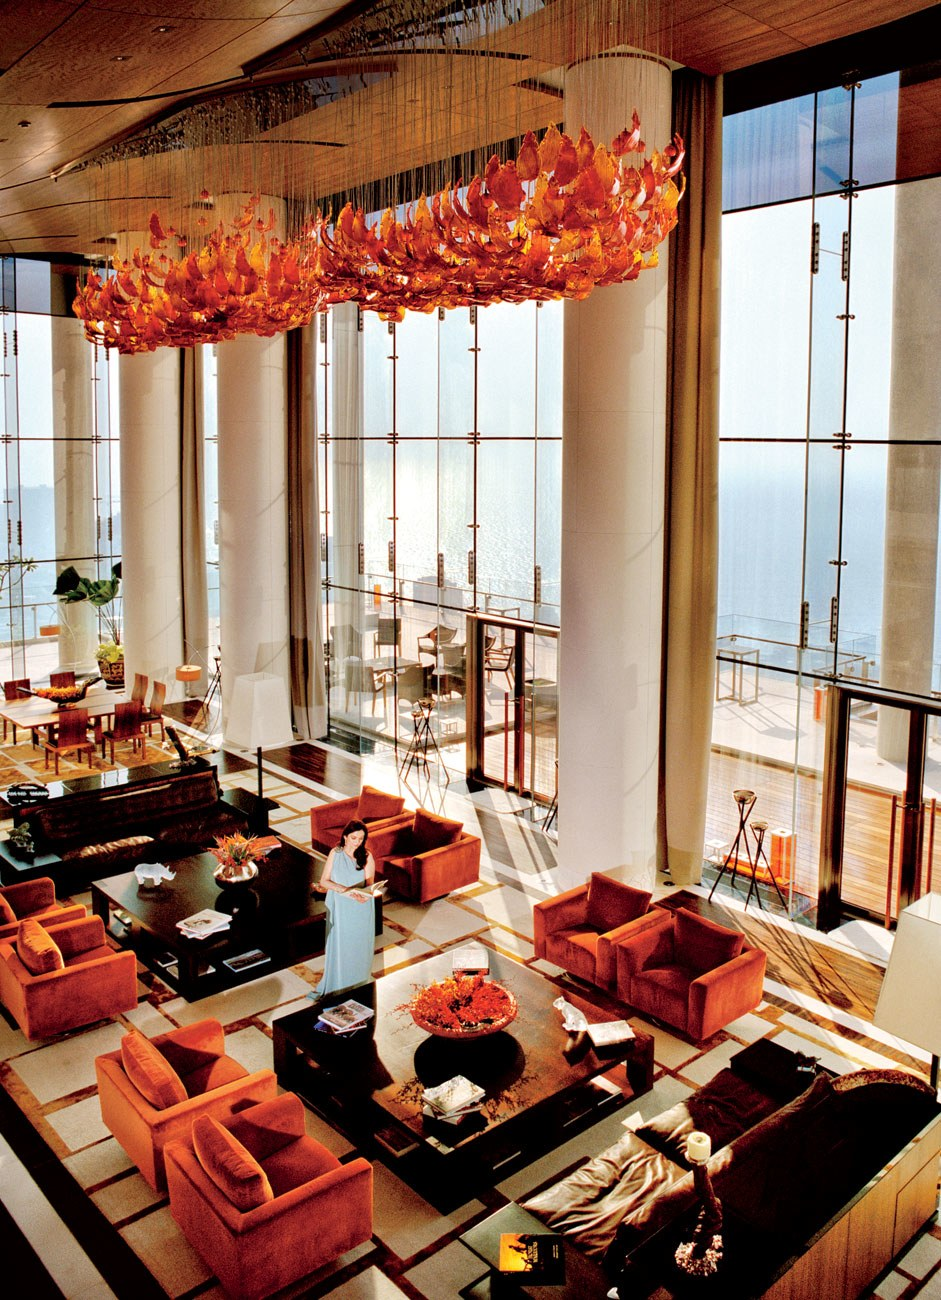 Antilia the Ambani Residence is the Second Most Valuable Residential Building in The World